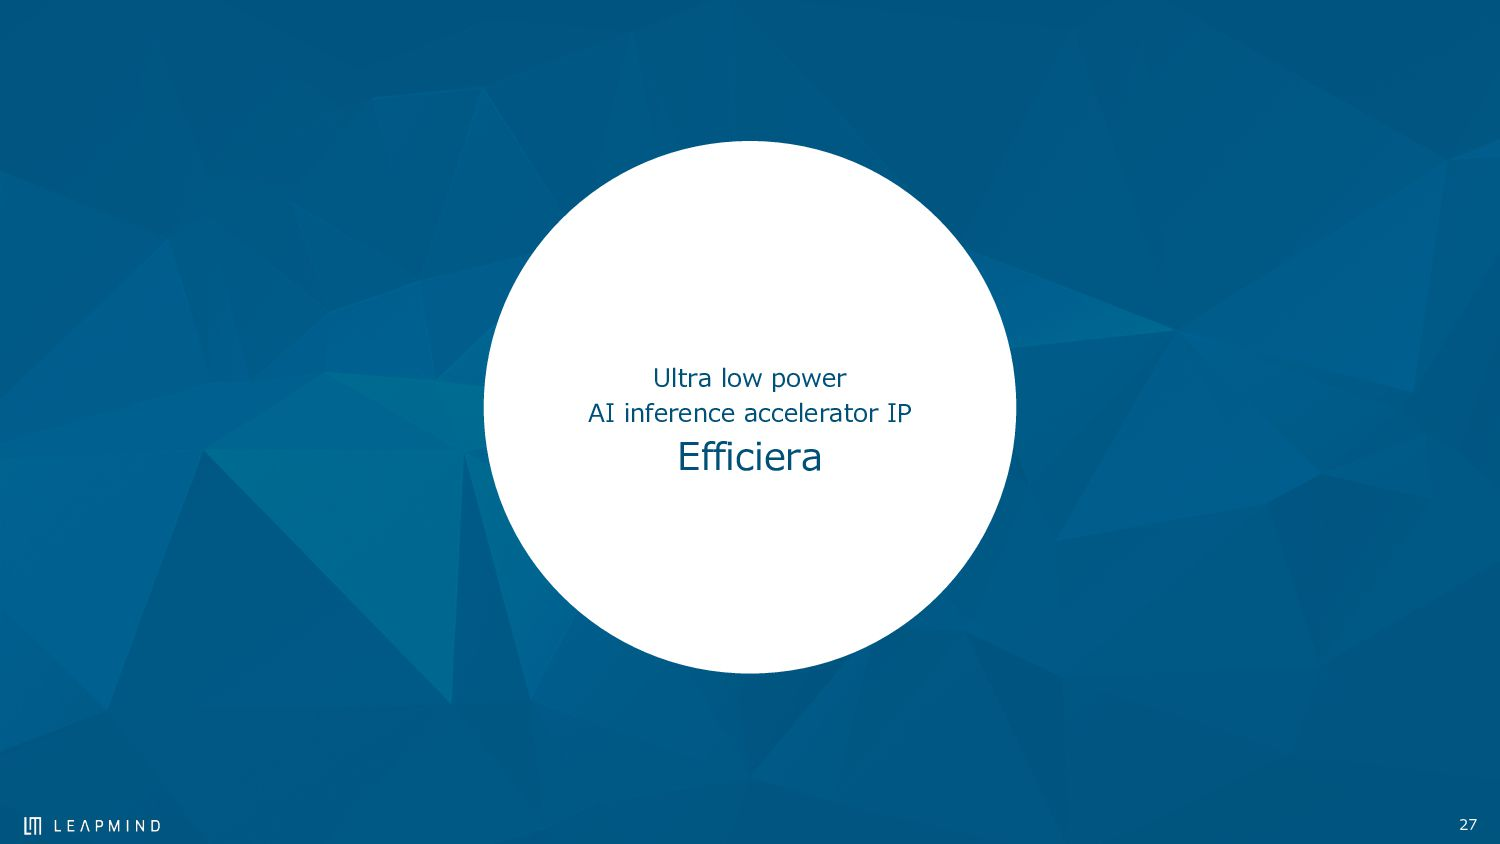 Ultra low power AI inference accelerator IP Eff...